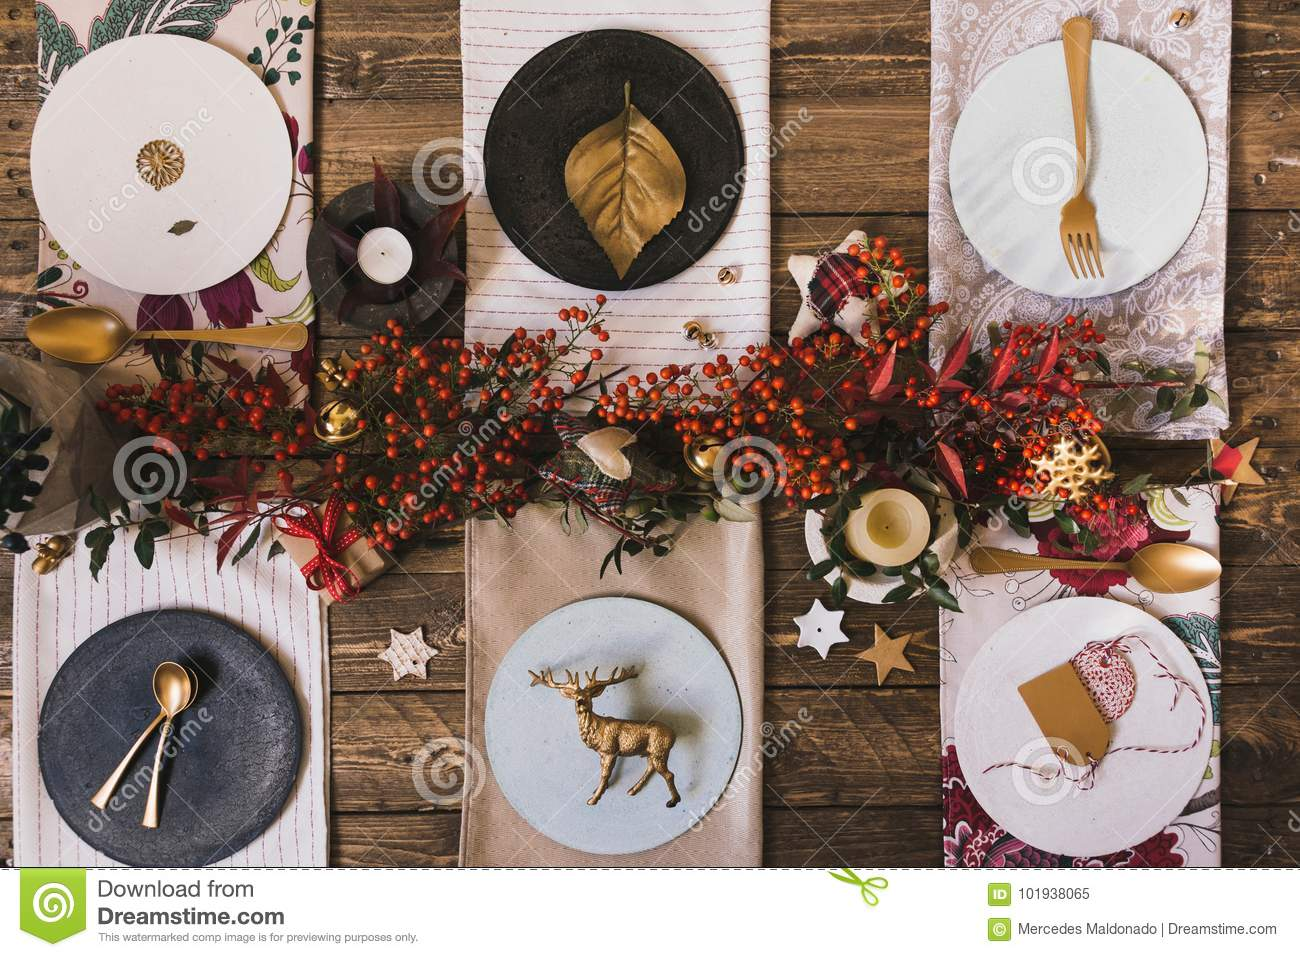 Miraculous Holiday Gold Place Setting Funny Christmas Table With Download Free Architecture Designs Grimeyleaguecom